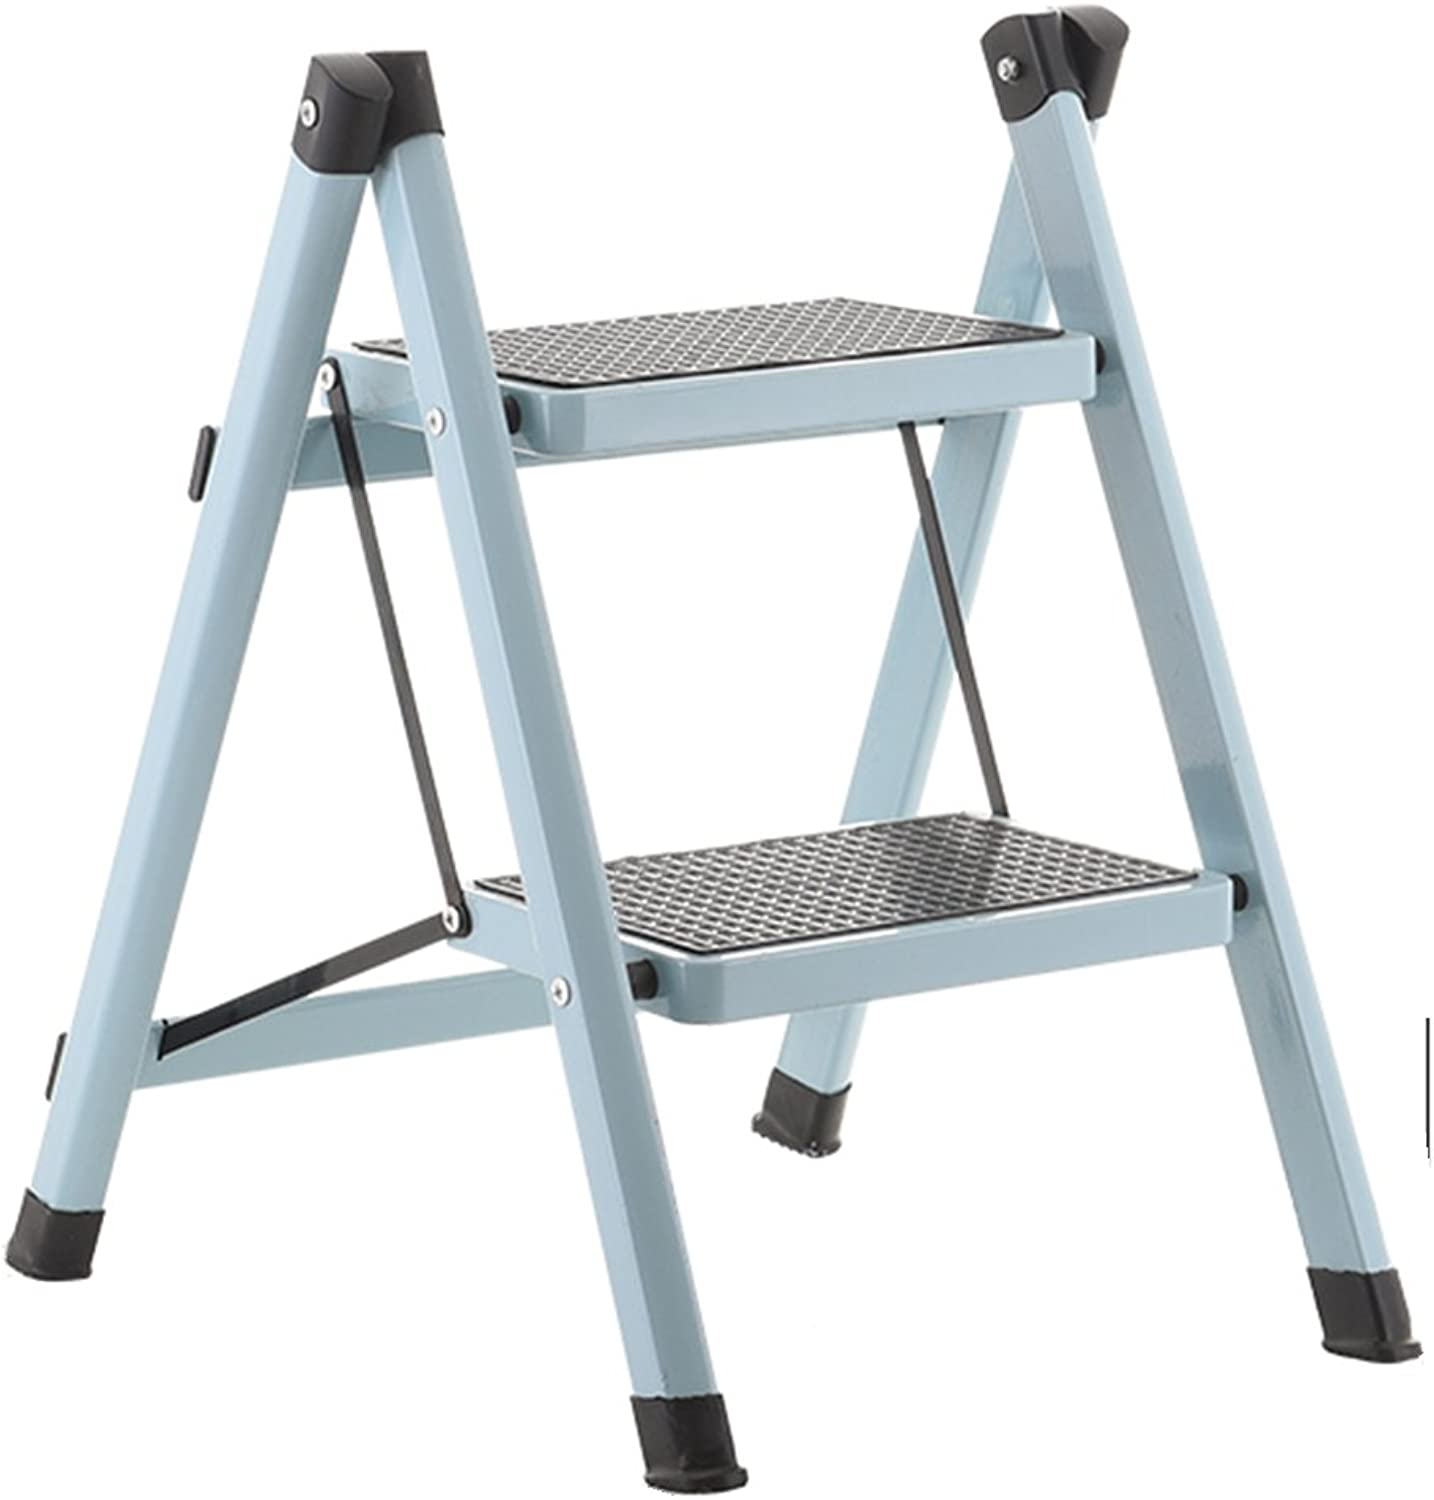 HAIPENG Herringbone Ladder Stool Footstool Small Seat Foldable Step Ladder Pedal Ladder 2 Steps Iron Household Dual-use Utility 12 colors Available 51x40x58cm ( color   Light bluee )